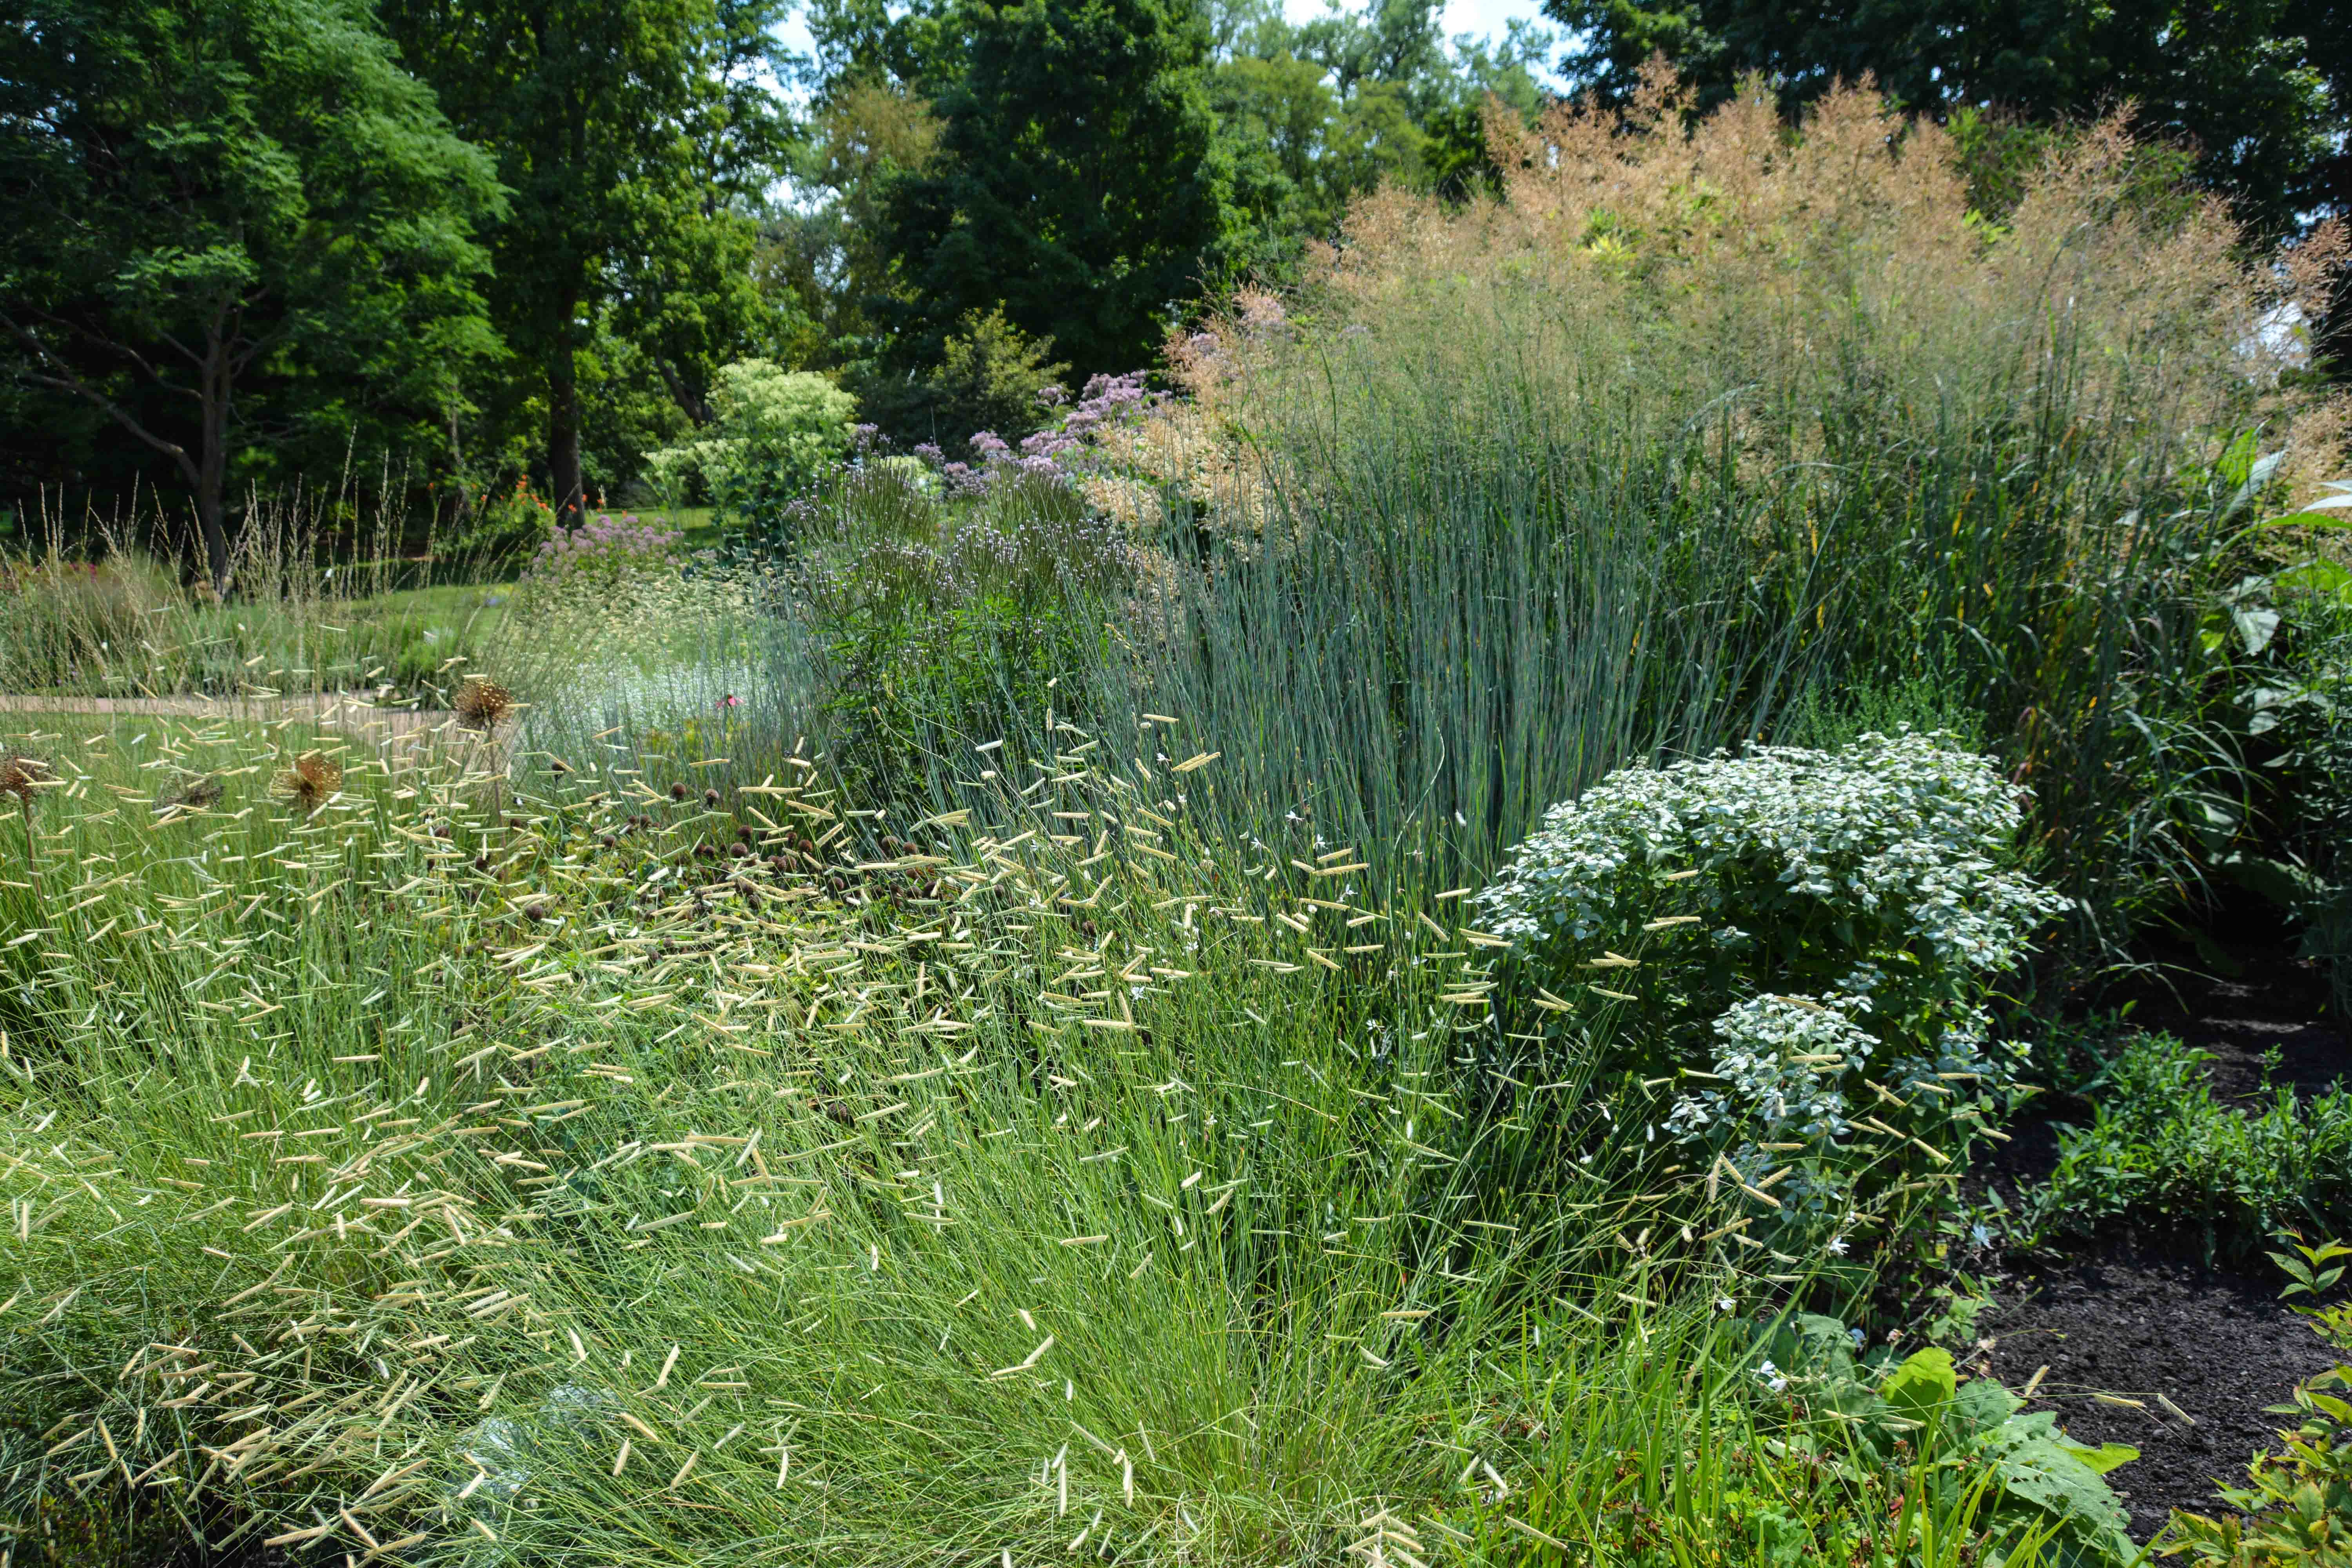 Bouteloua gracilis 'Blonde Ambition', 7 Essential Ornamental Grasses, Thinking Outside the Boxwood